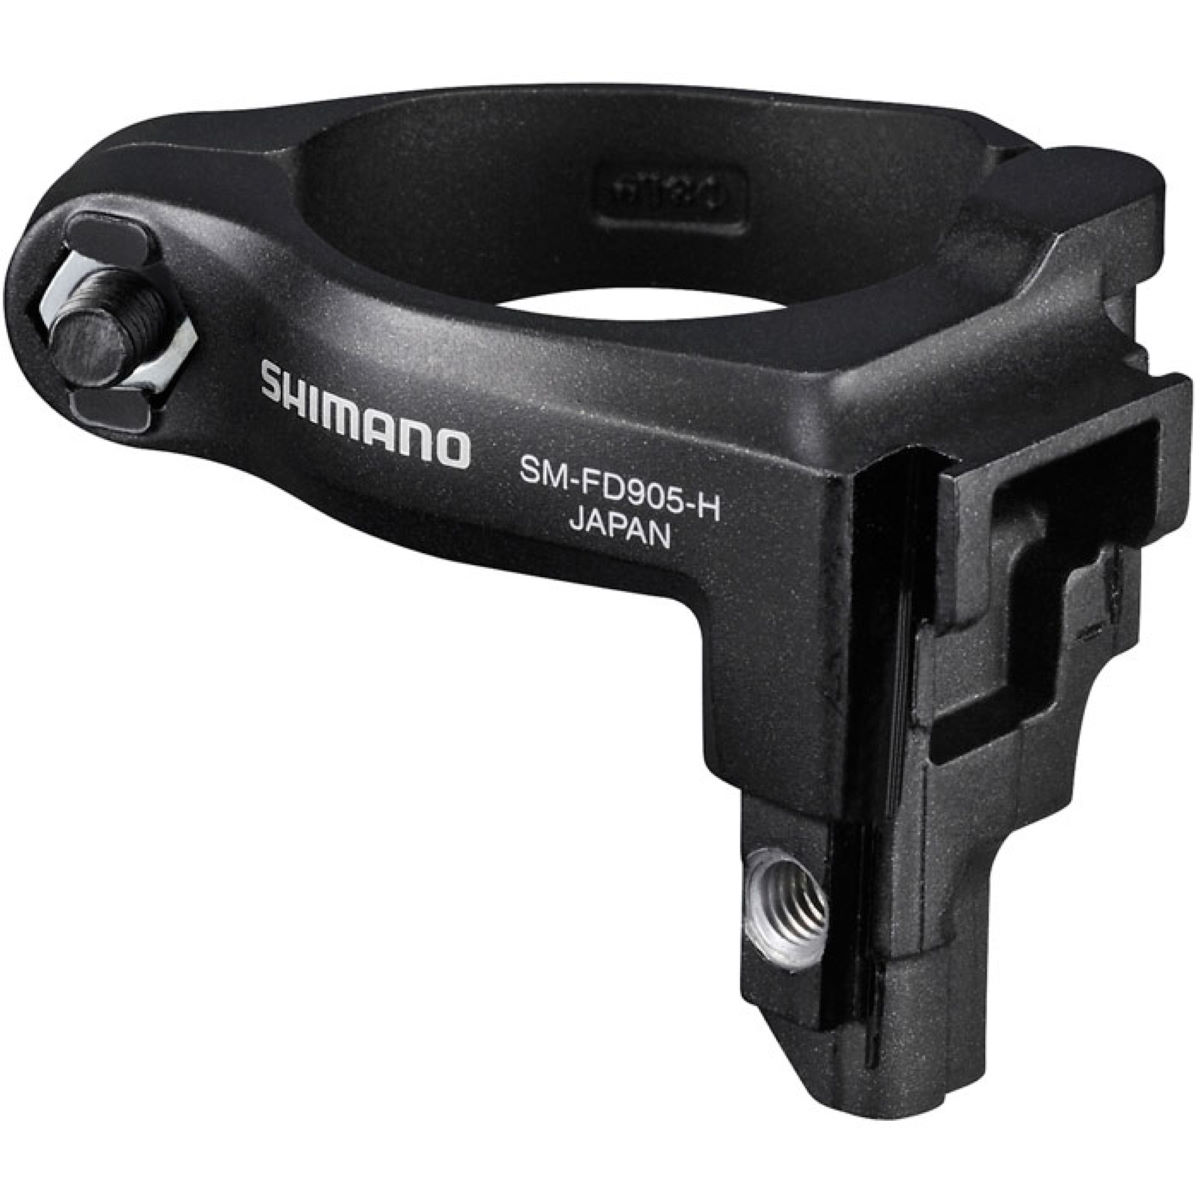 Shimano Xtr Di2 Front Derailleur Mount Adapter - High Clamp Band